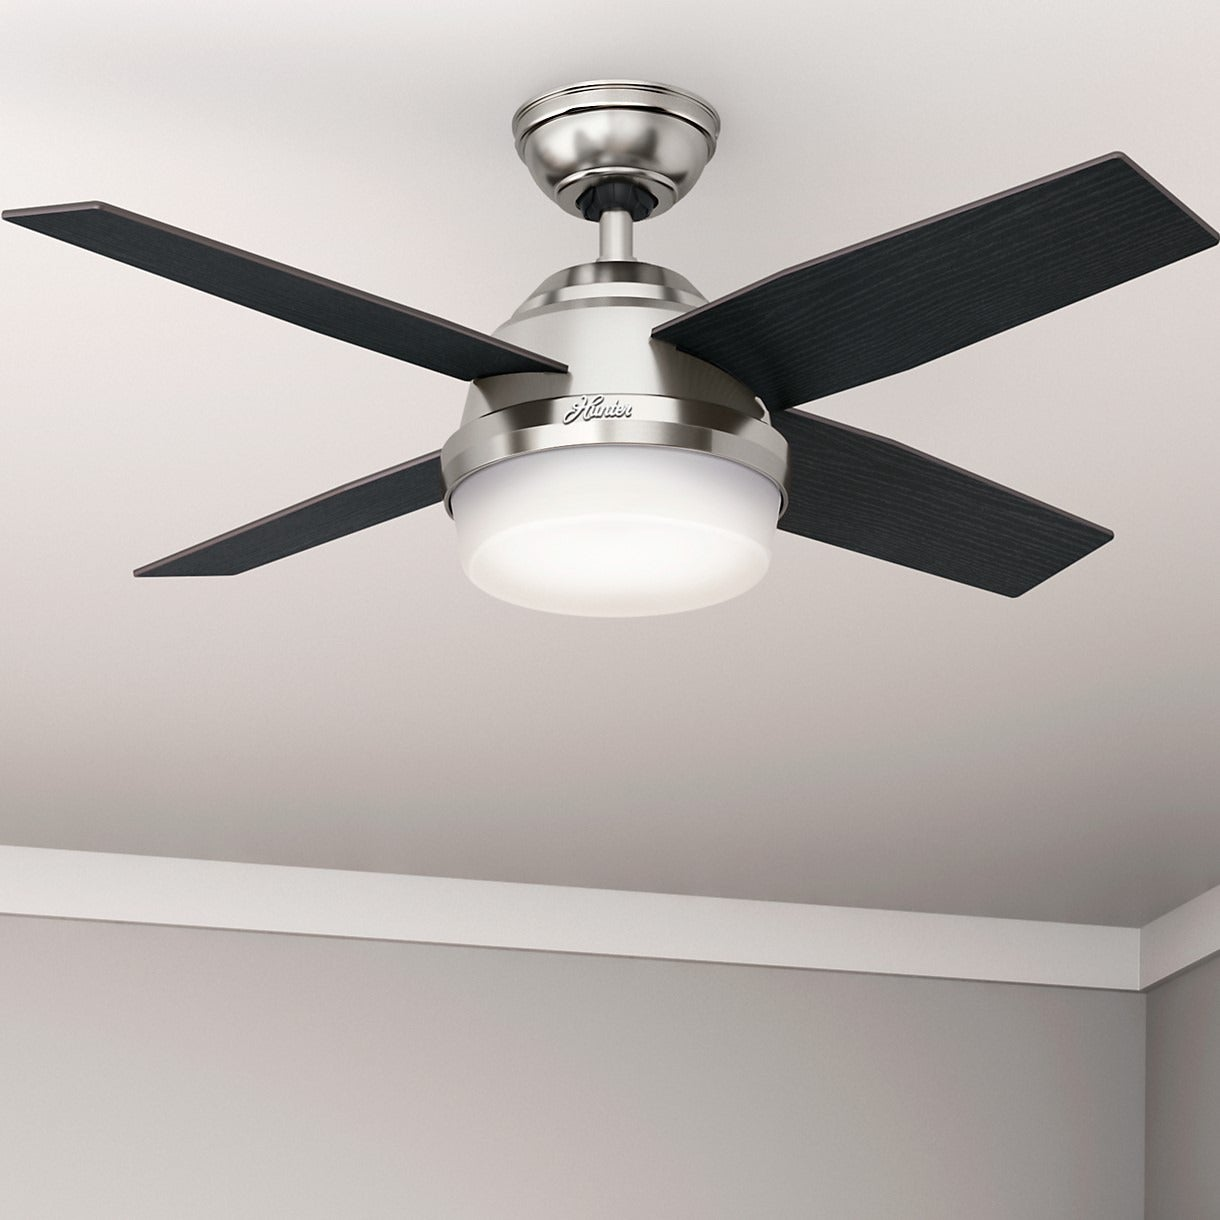 minka ceiling by index inch bnw fan aire outdoor ceilings simple fans